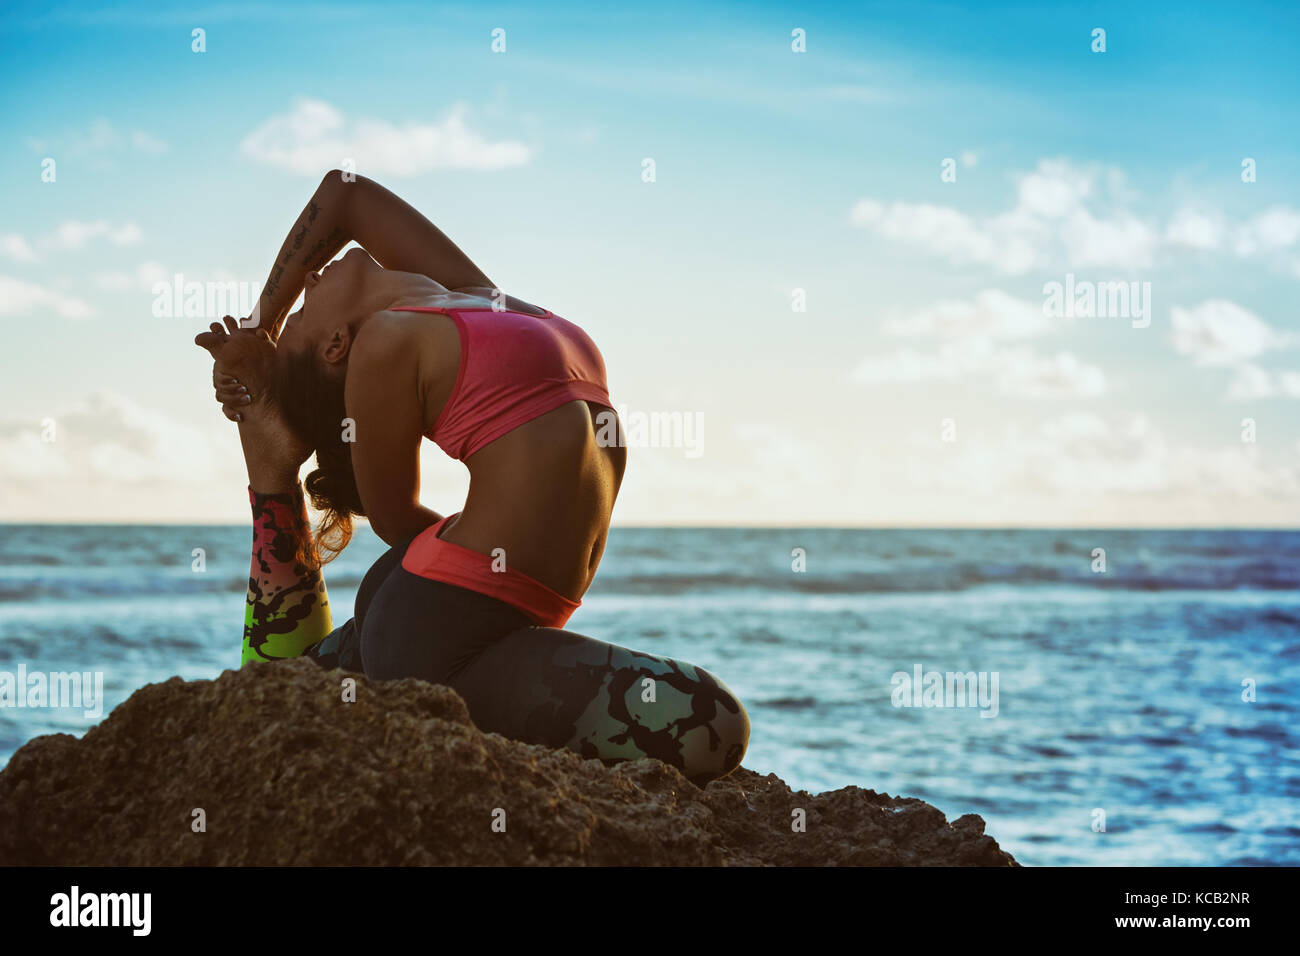 Meditation on sunset sky background. Young active woman sit in yoga pose on beach rock, stretching to keep fit and Stock Photo